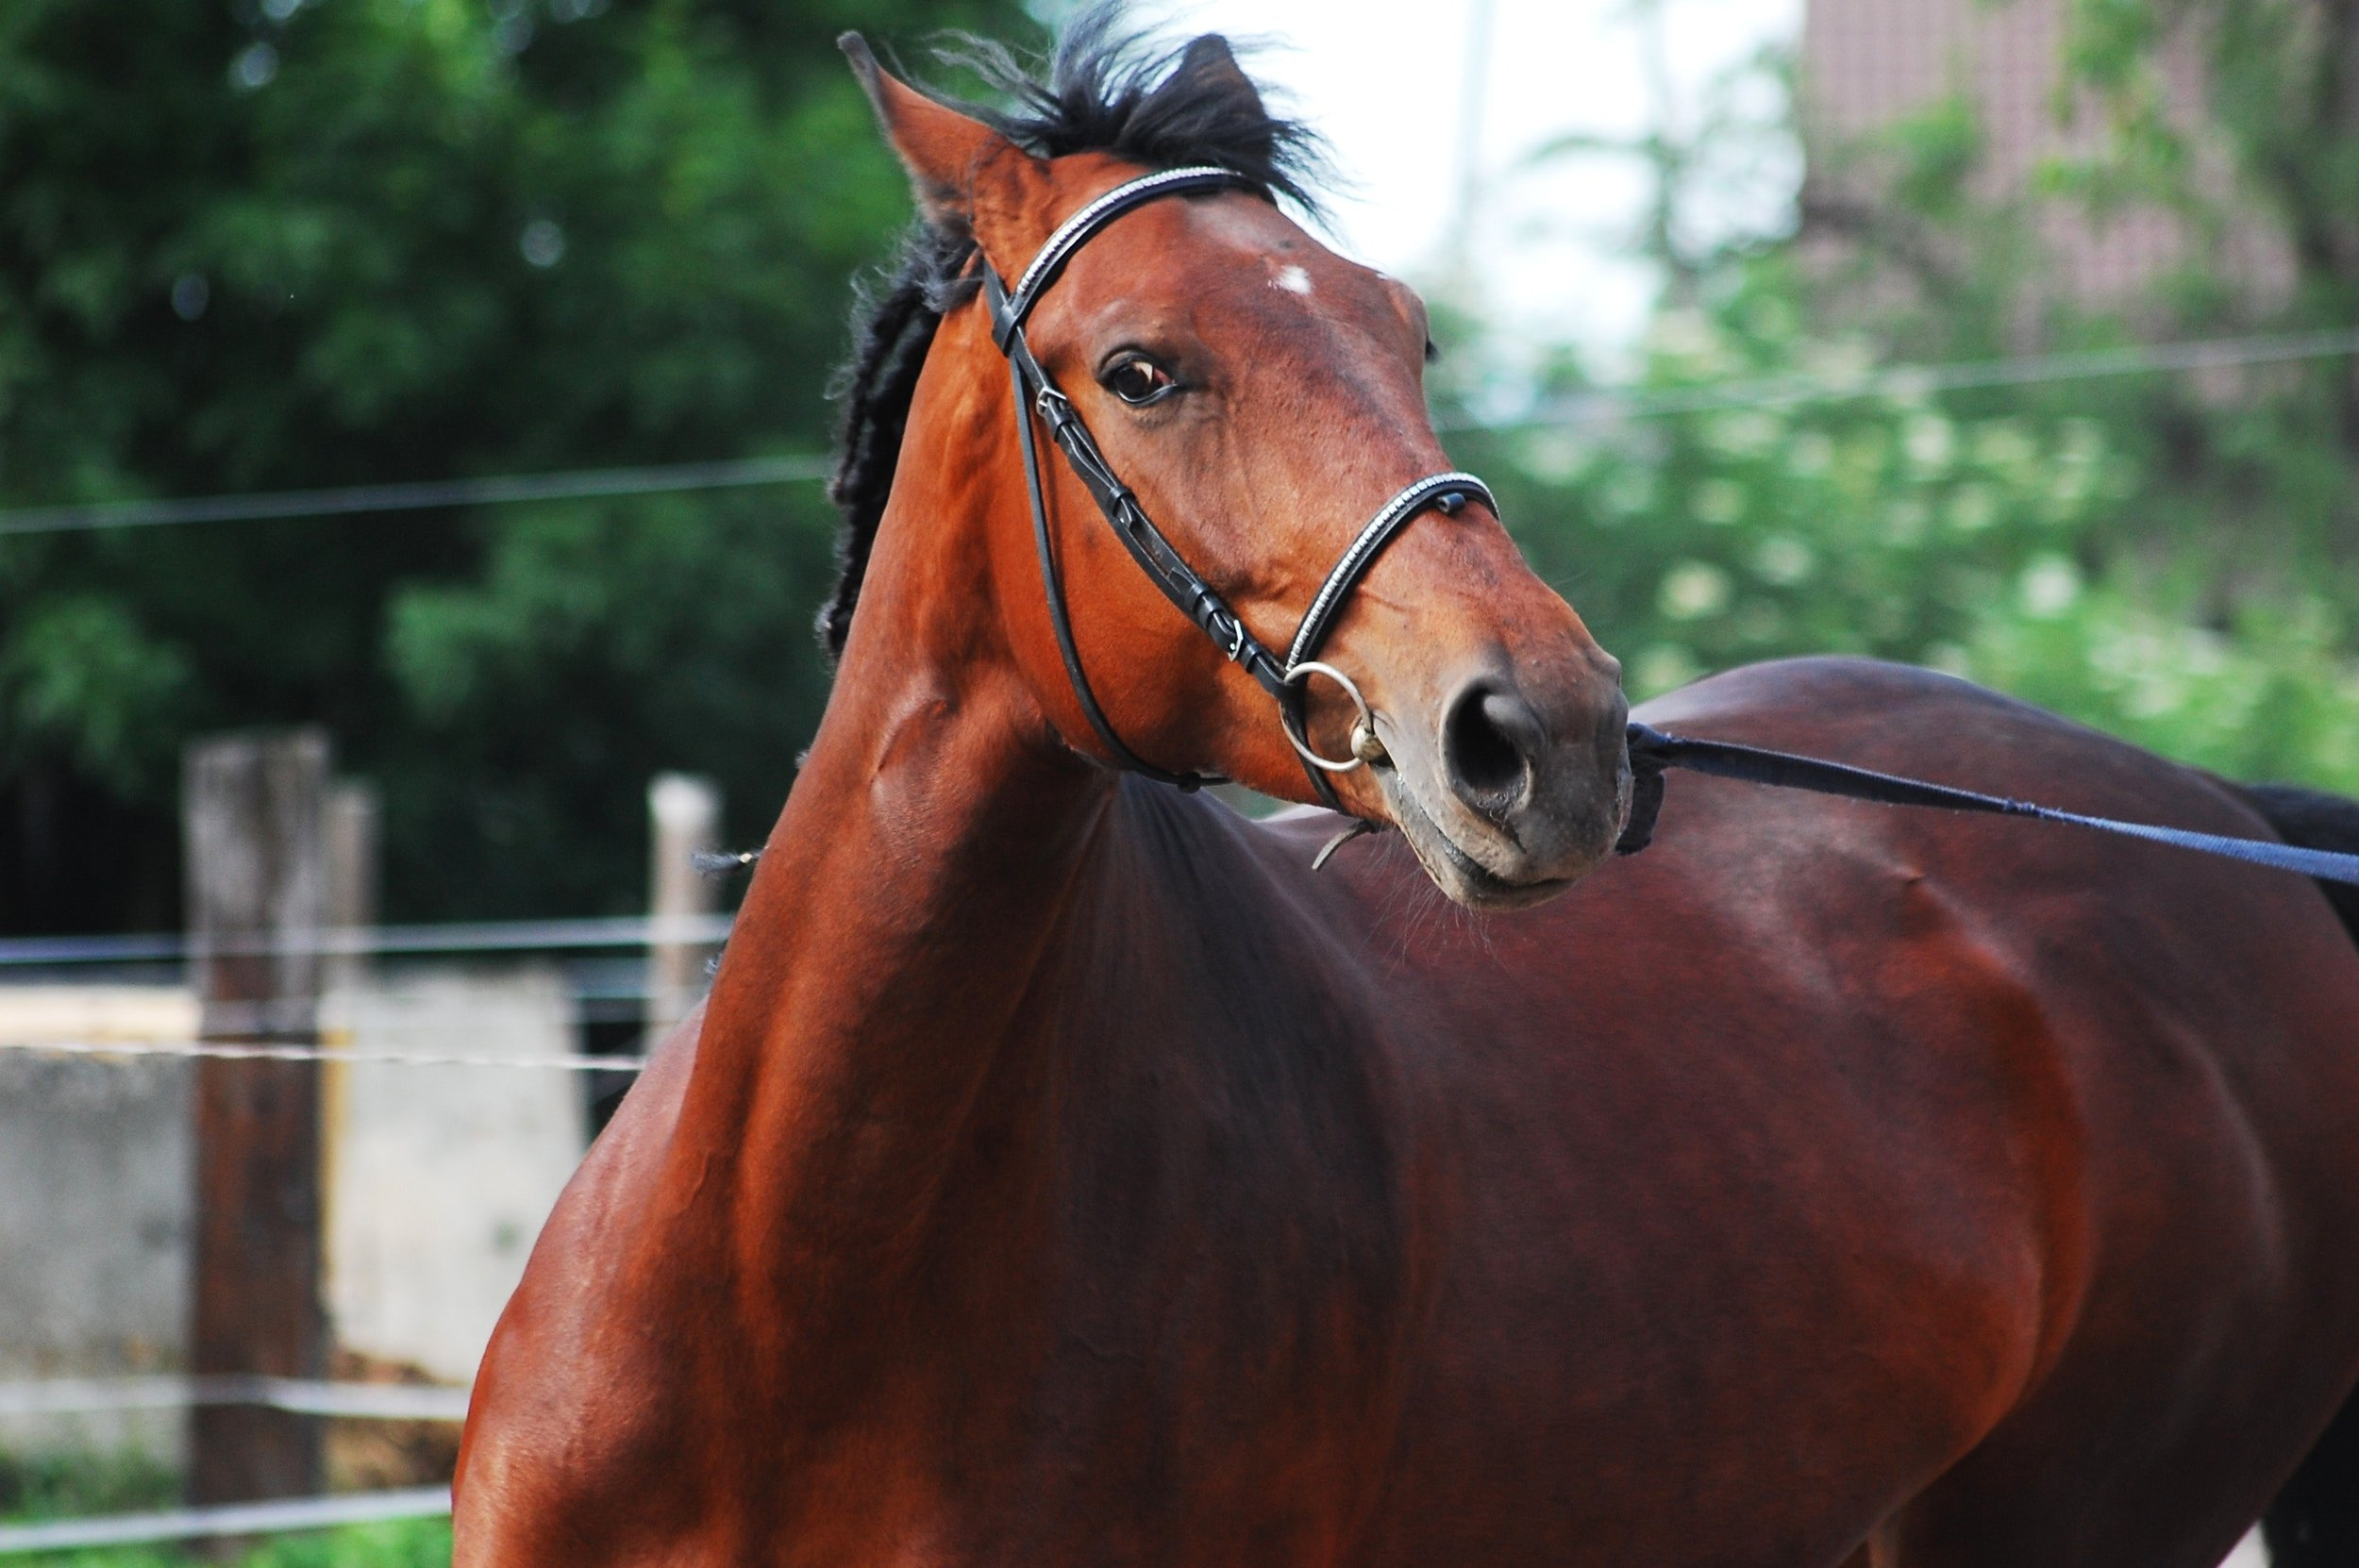 Is your horse evading the aid?